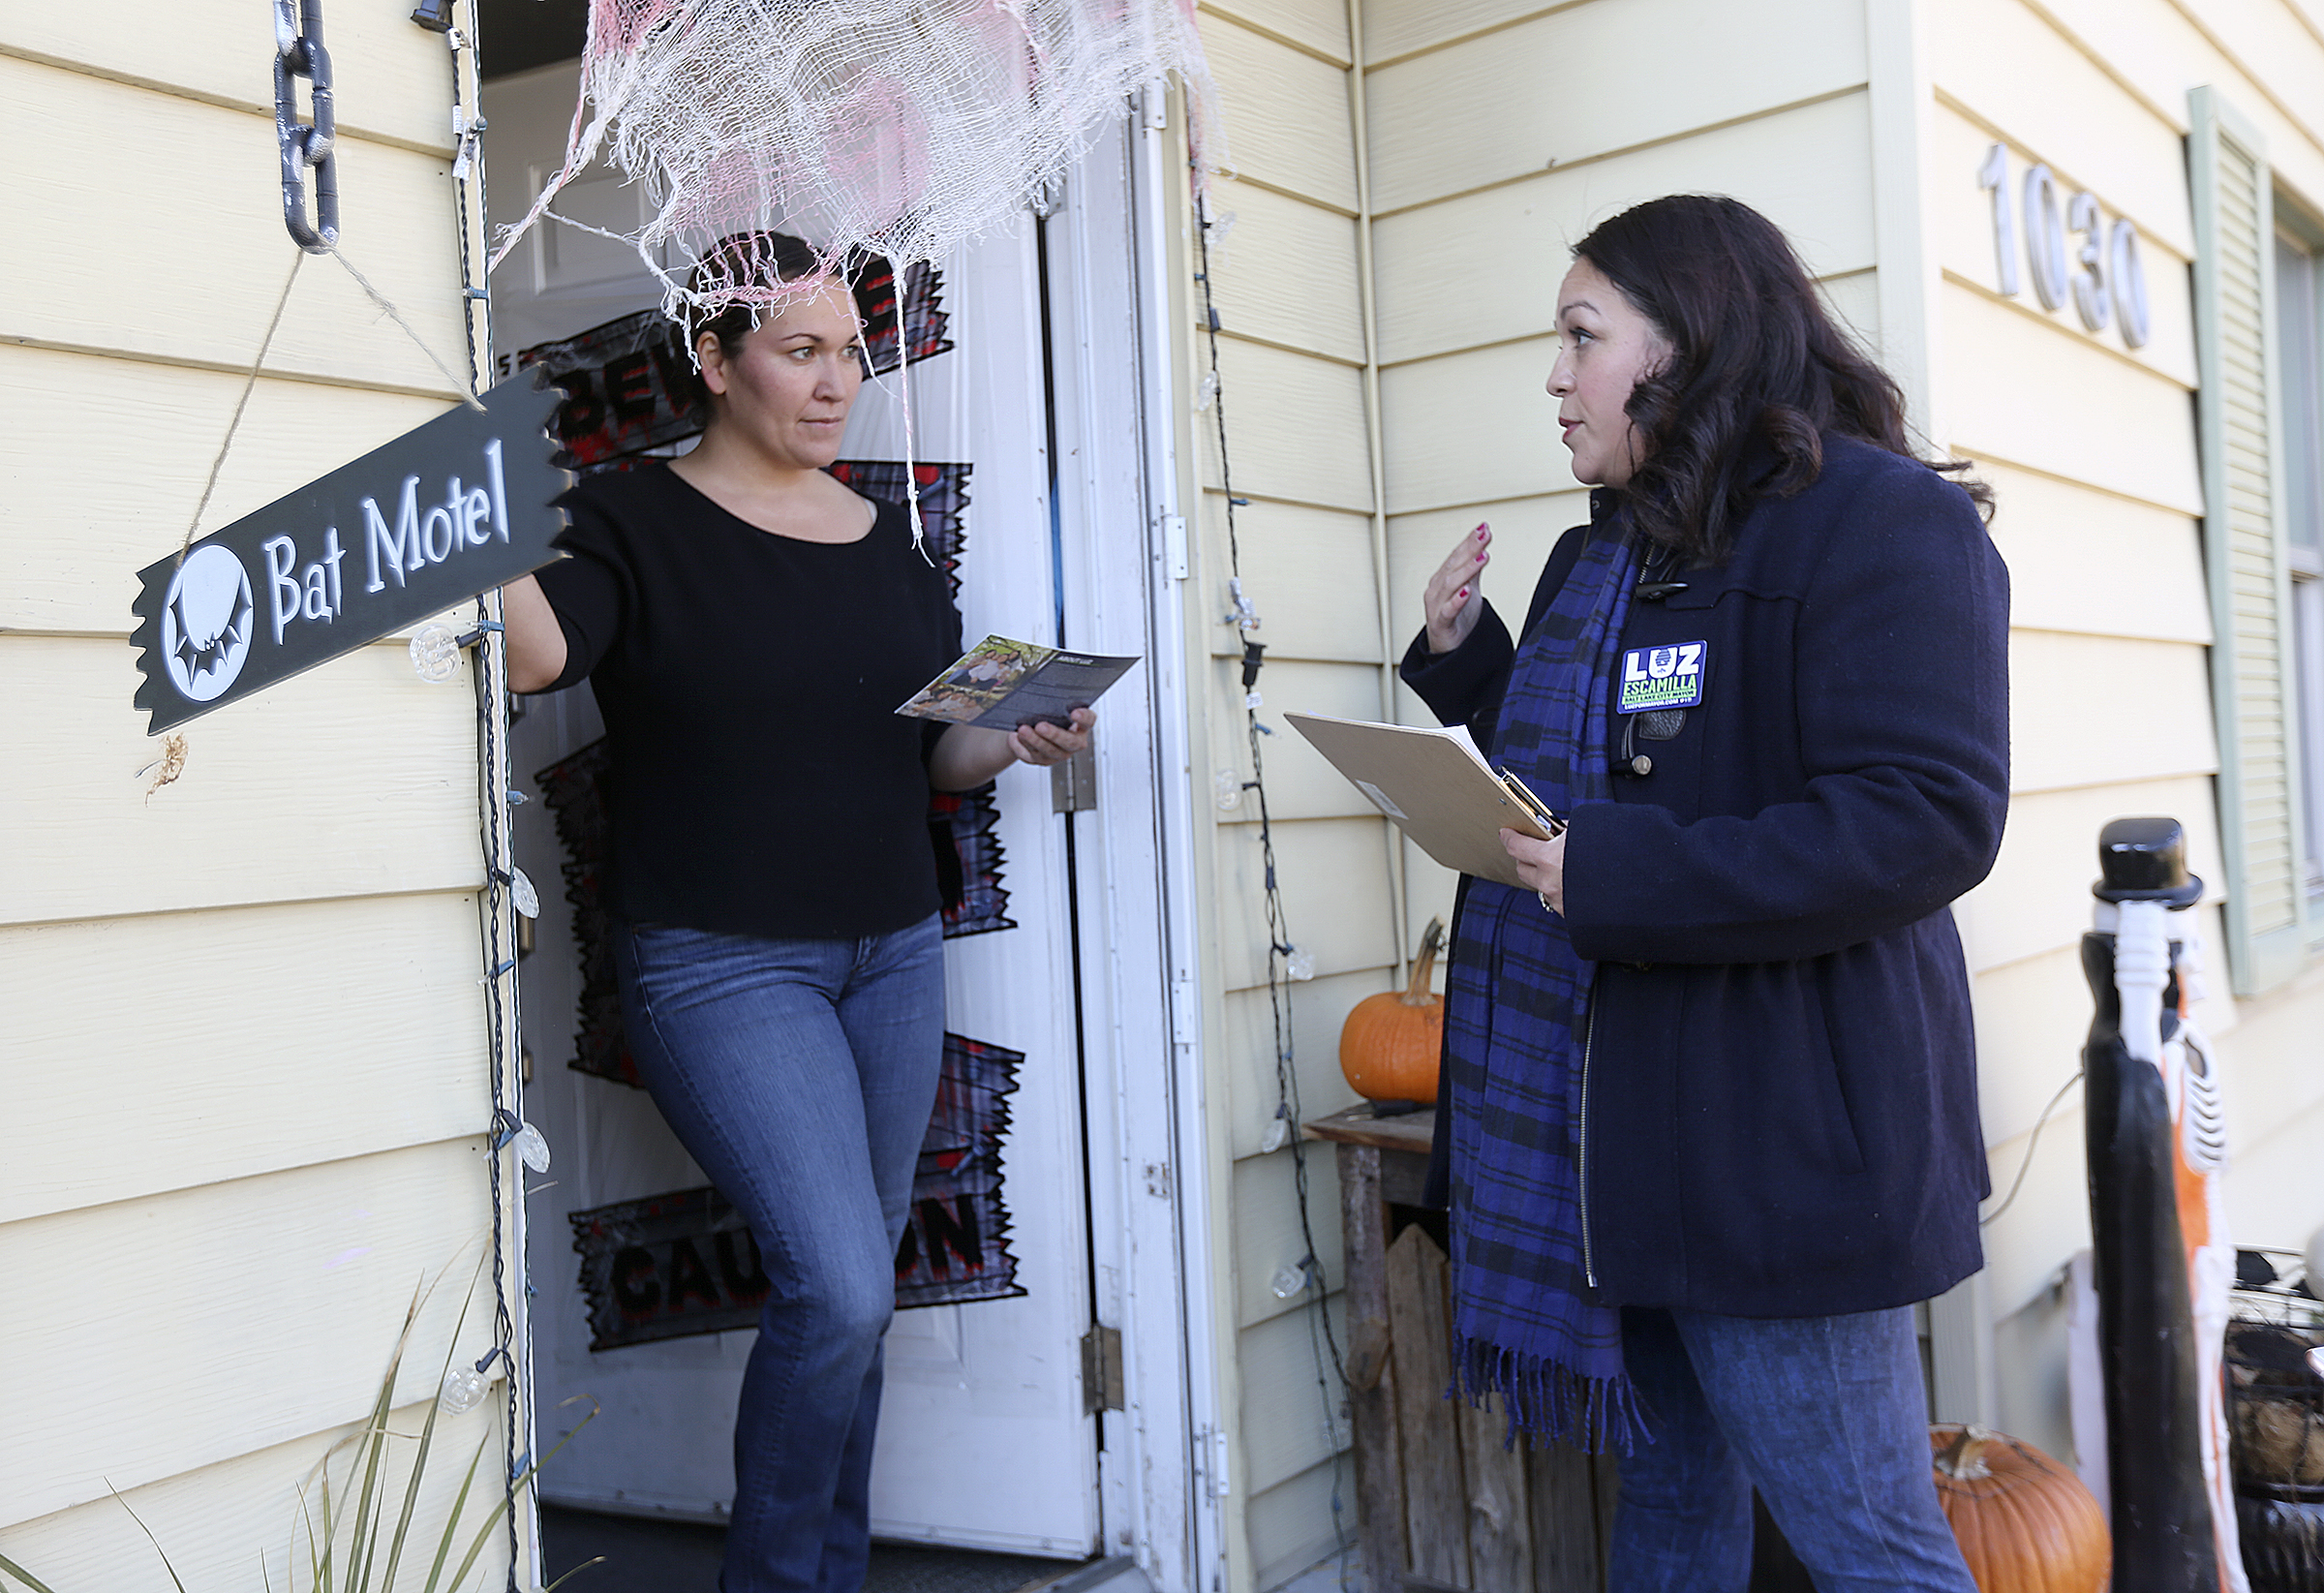 Salt Lake City mayoral candidate and state senator Luz Escamilla talks with Erika Riggs, left, while knocking on doors in the Glendale neighborhood of Salt Lake City on Friday, Nov. 1, 2019.